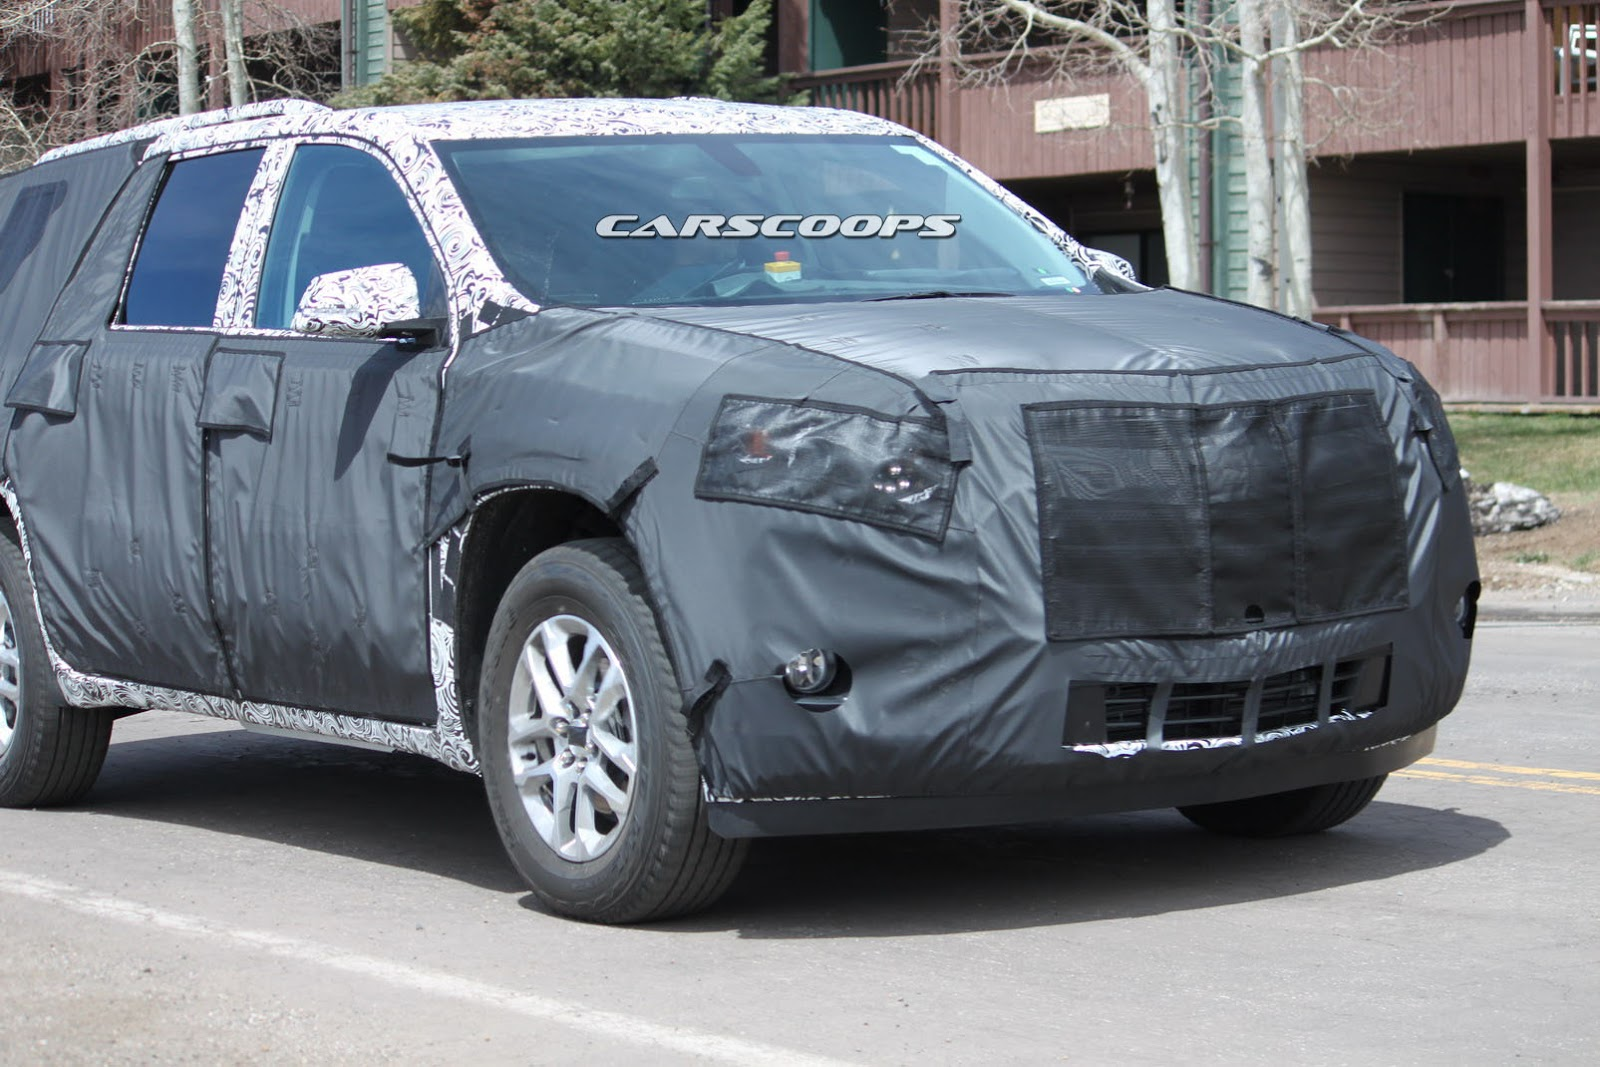 U Spy 2018 Chevrolet Traverse SUV, The GMC Acadia's Roomier Brother - carscoops.com